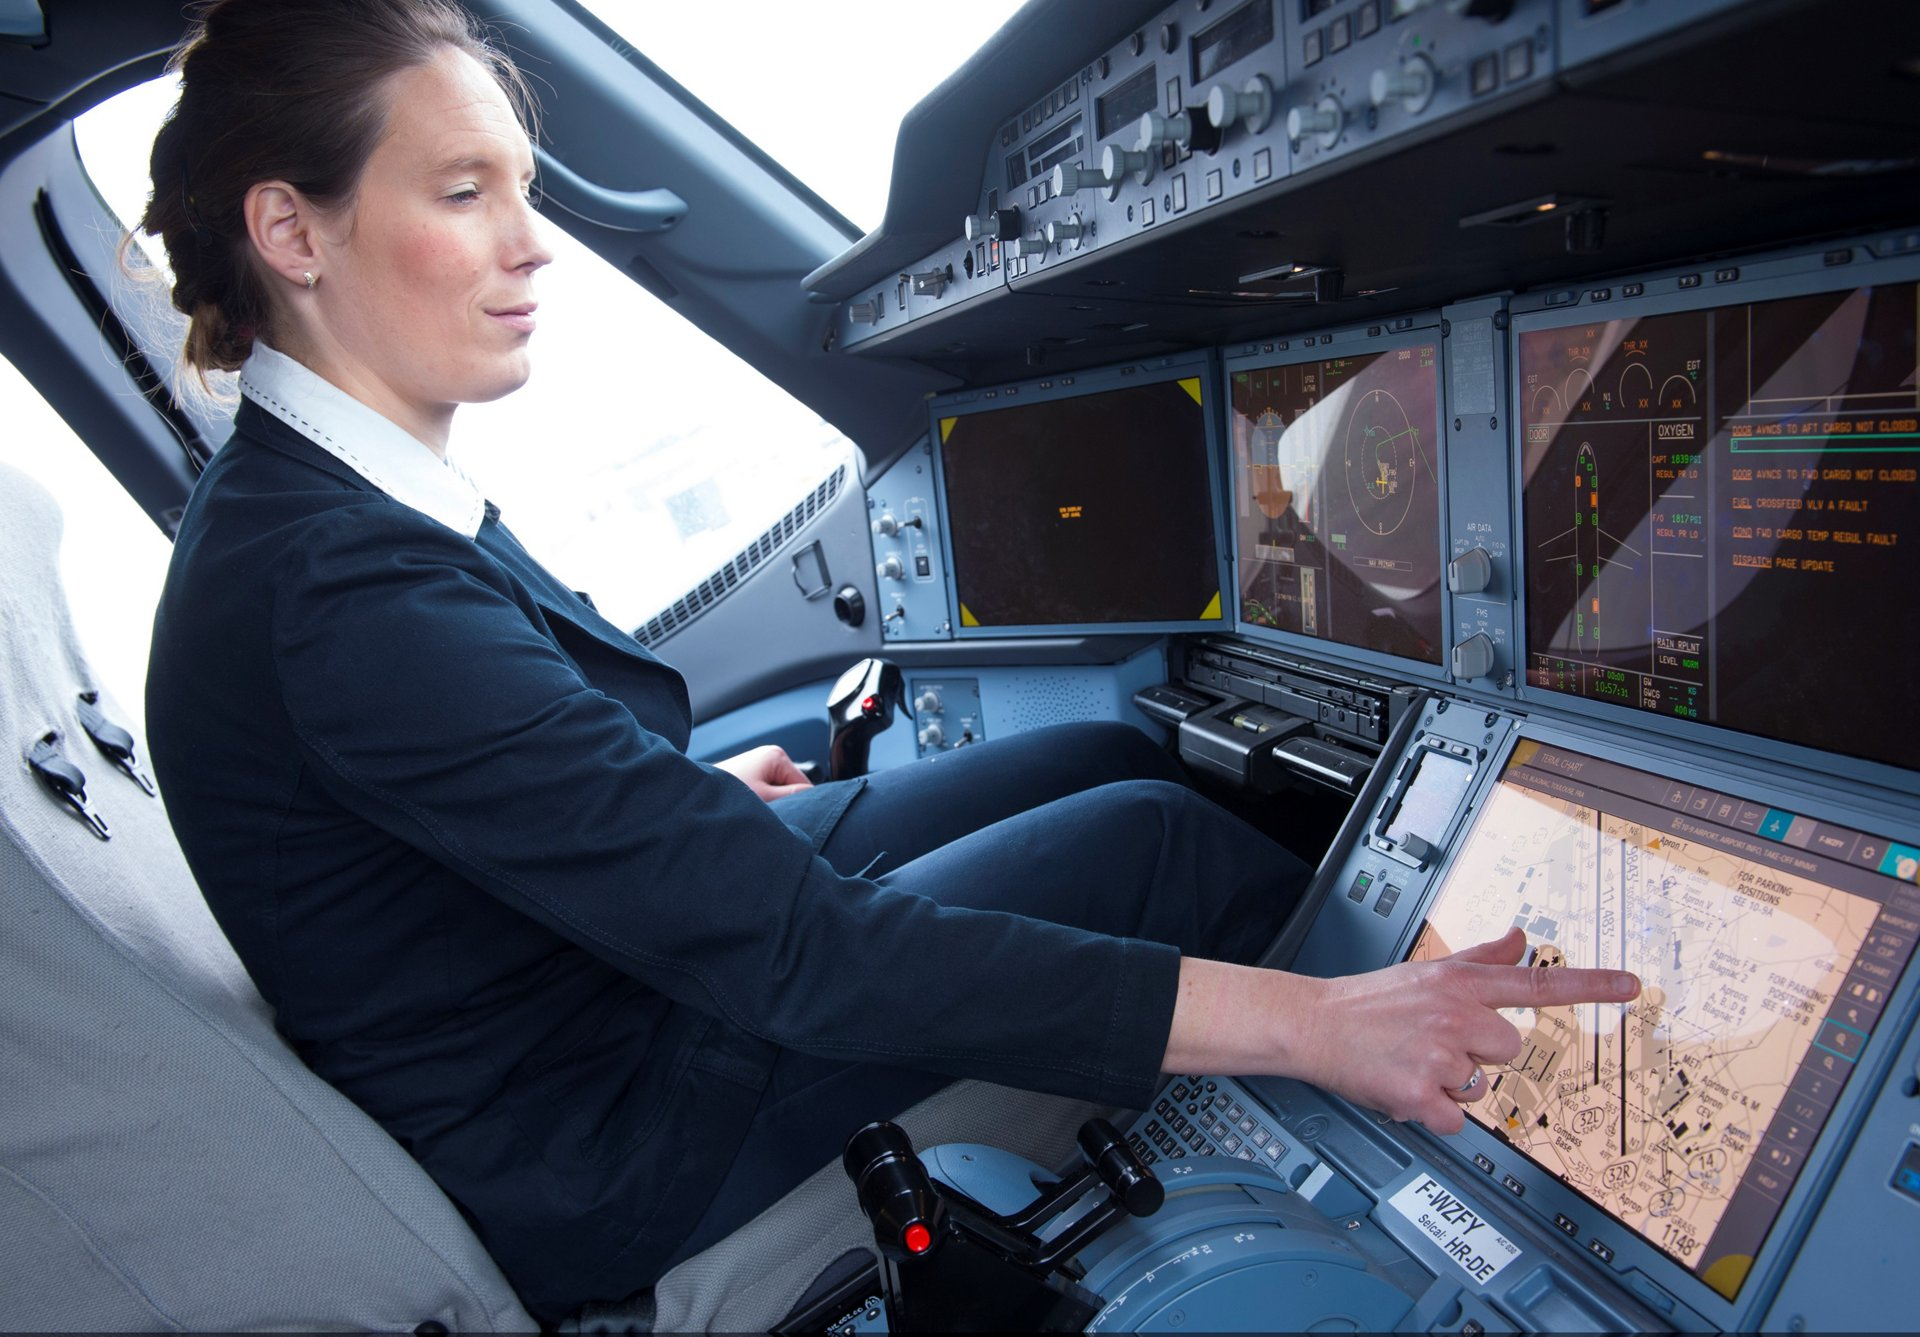 Microsoft Surface with EFB Software A350XWB Cockpit